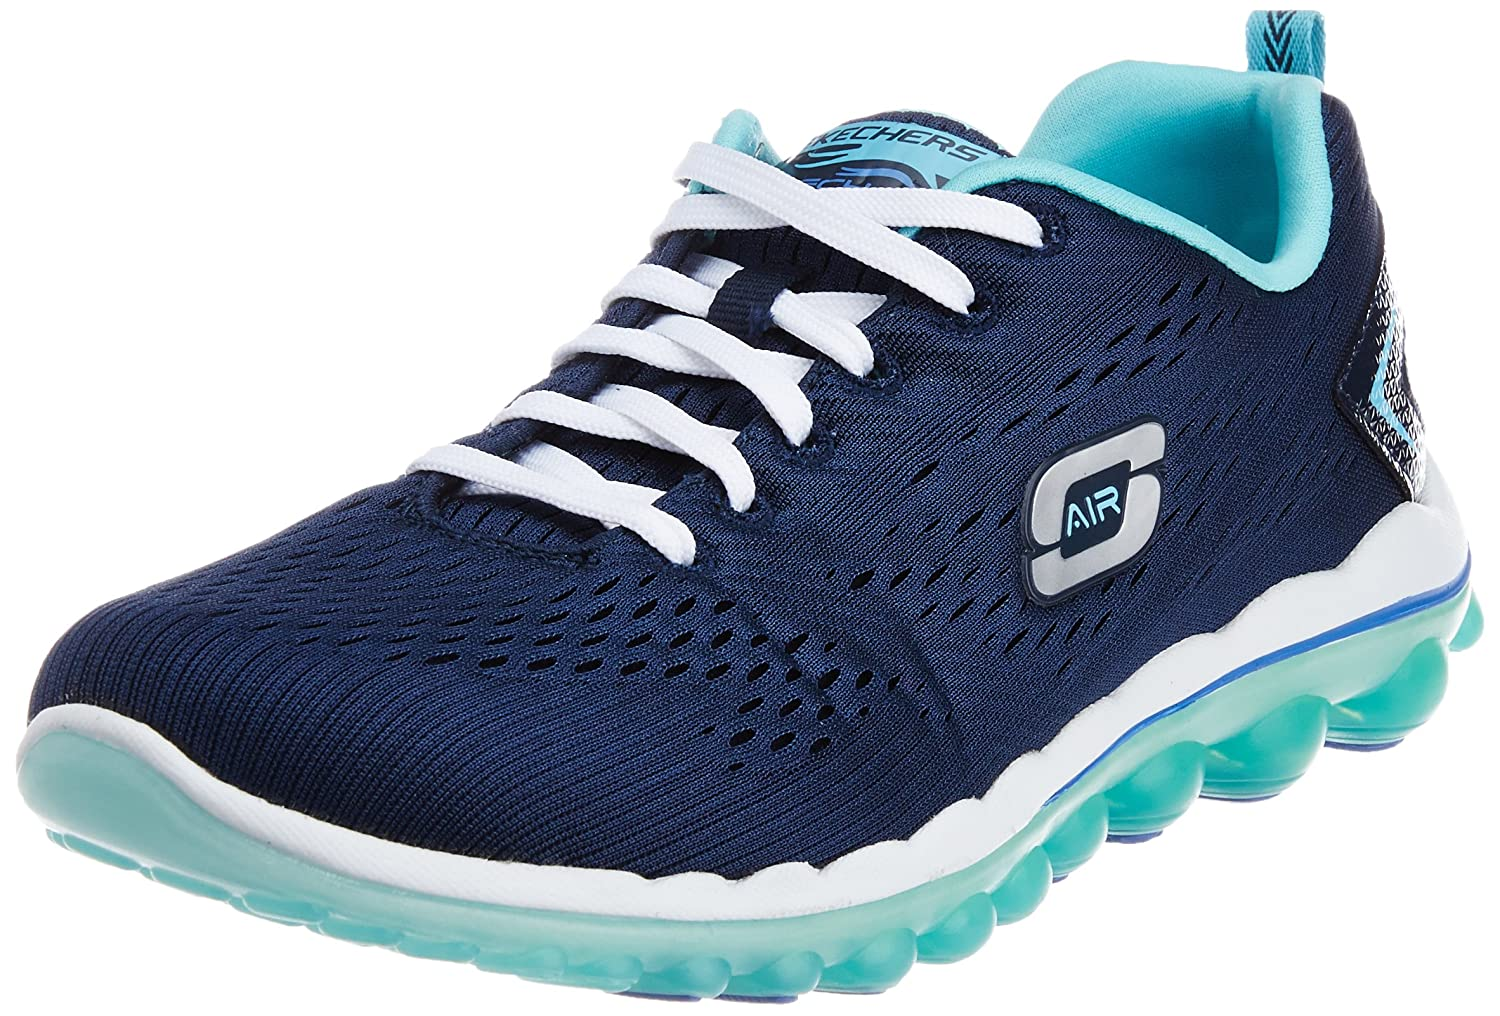 Skechers Sport Women's Skech Air Run High Fashion Sneaker B00MXVHD4K 7.5 B(M) US|Navy Mesh/Light Blue Trim